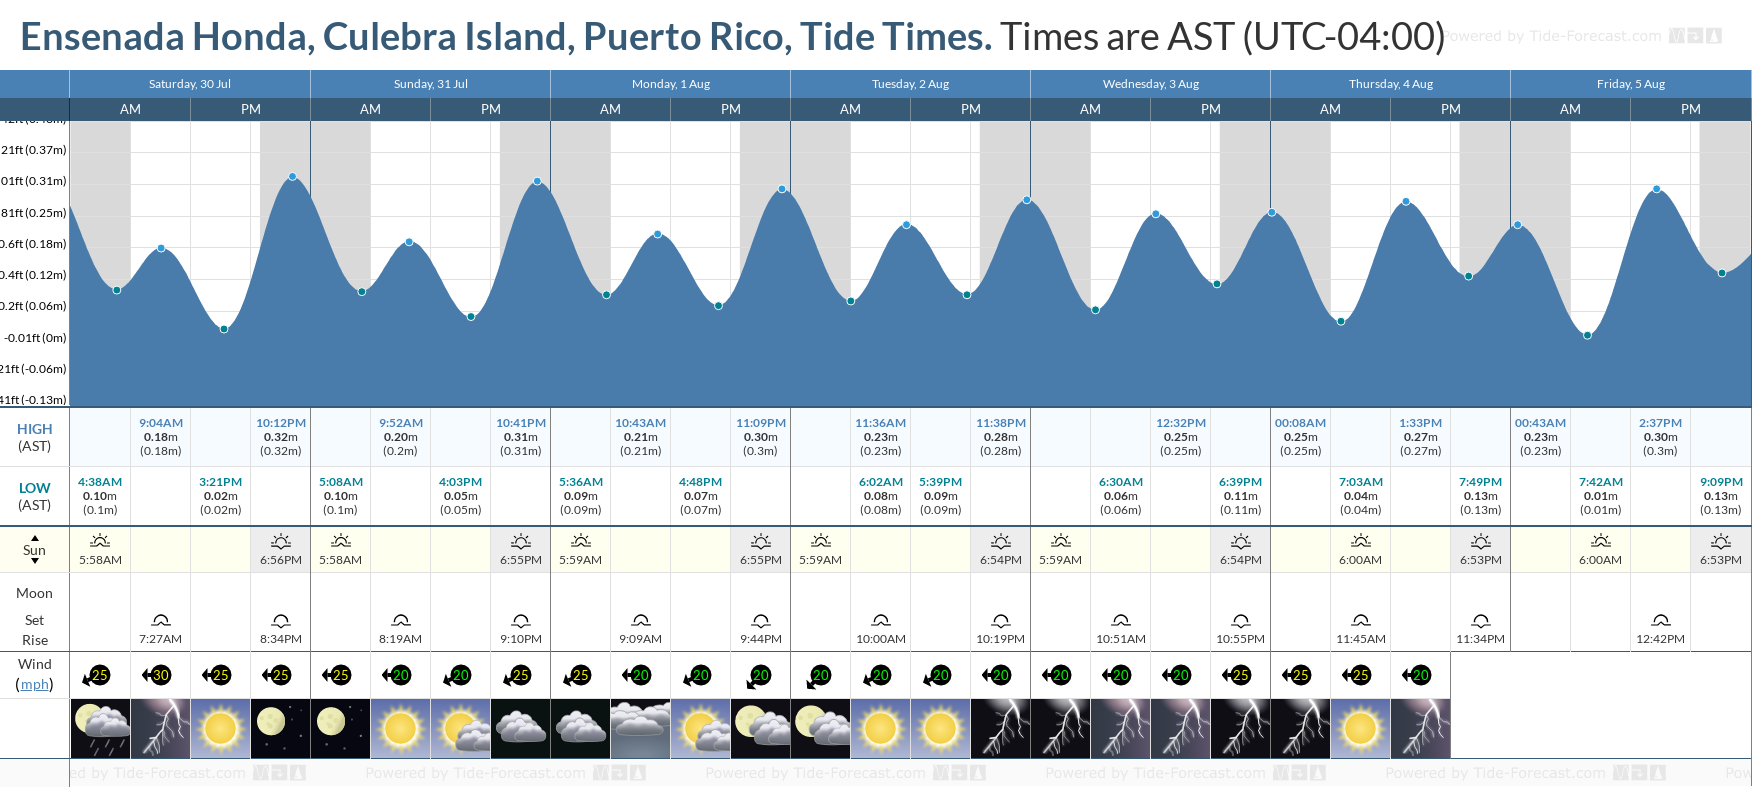 Ensenada Honda, Culebra Island, Puerto Rico Tide Chart including high and low tide tide times for the next 7 days